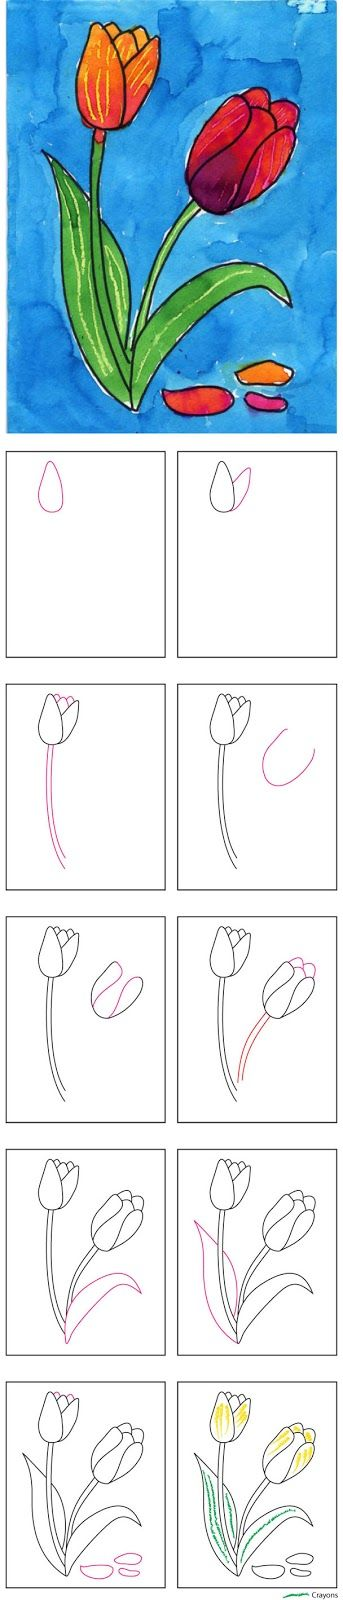 Art Projects for Kids: How to Draw a Tulip